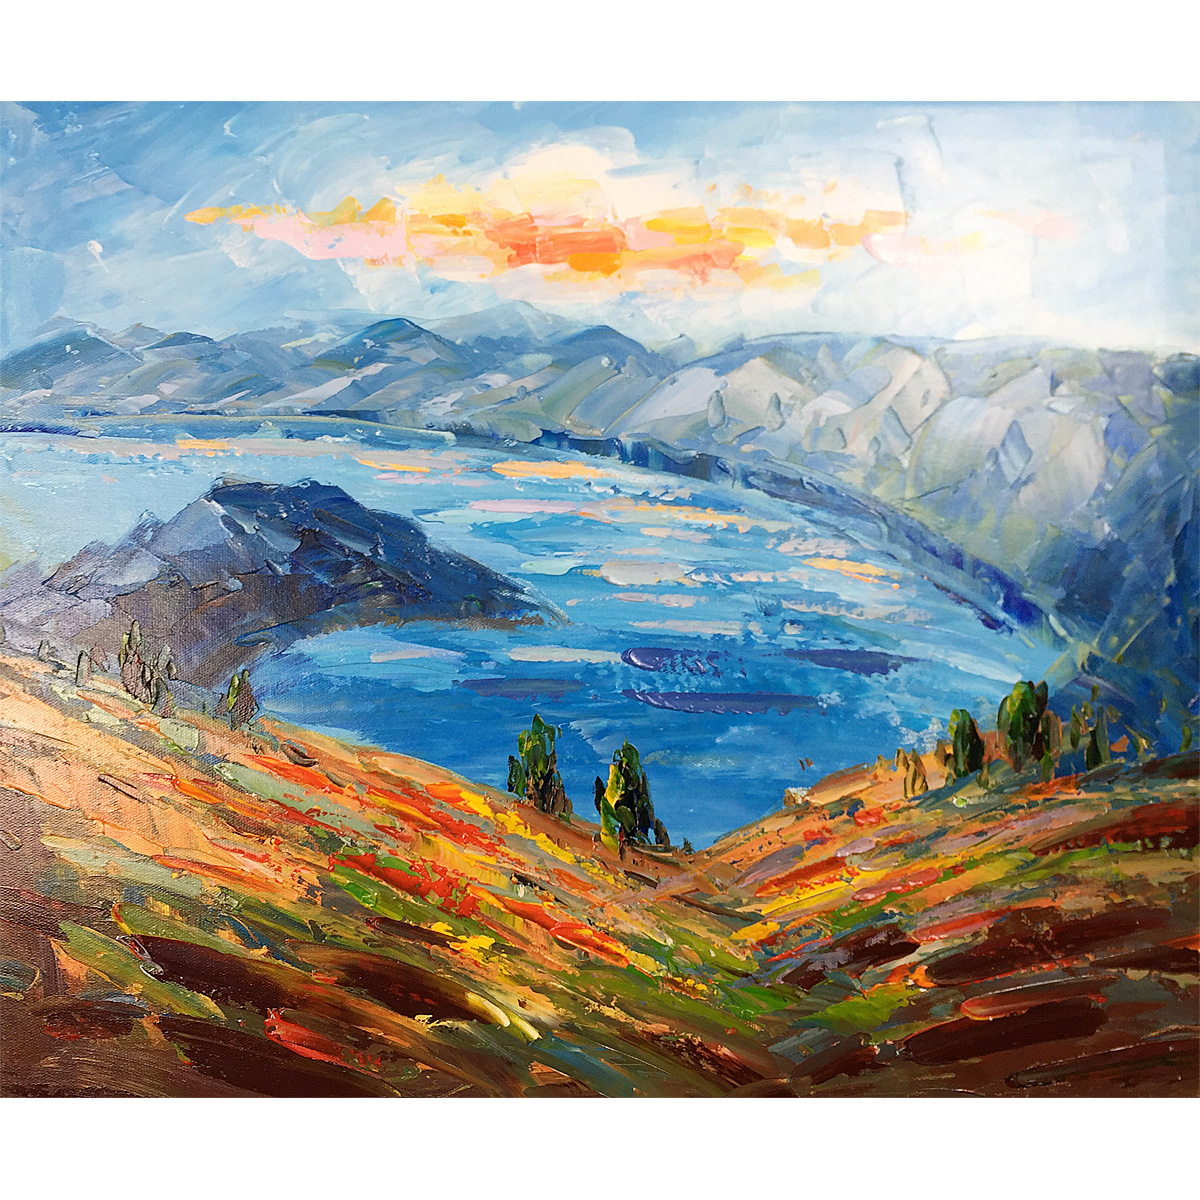 Original Oil Painting Hand-Painted Canvas Mountains and Lakes Abstract Landscape Artwork ornament